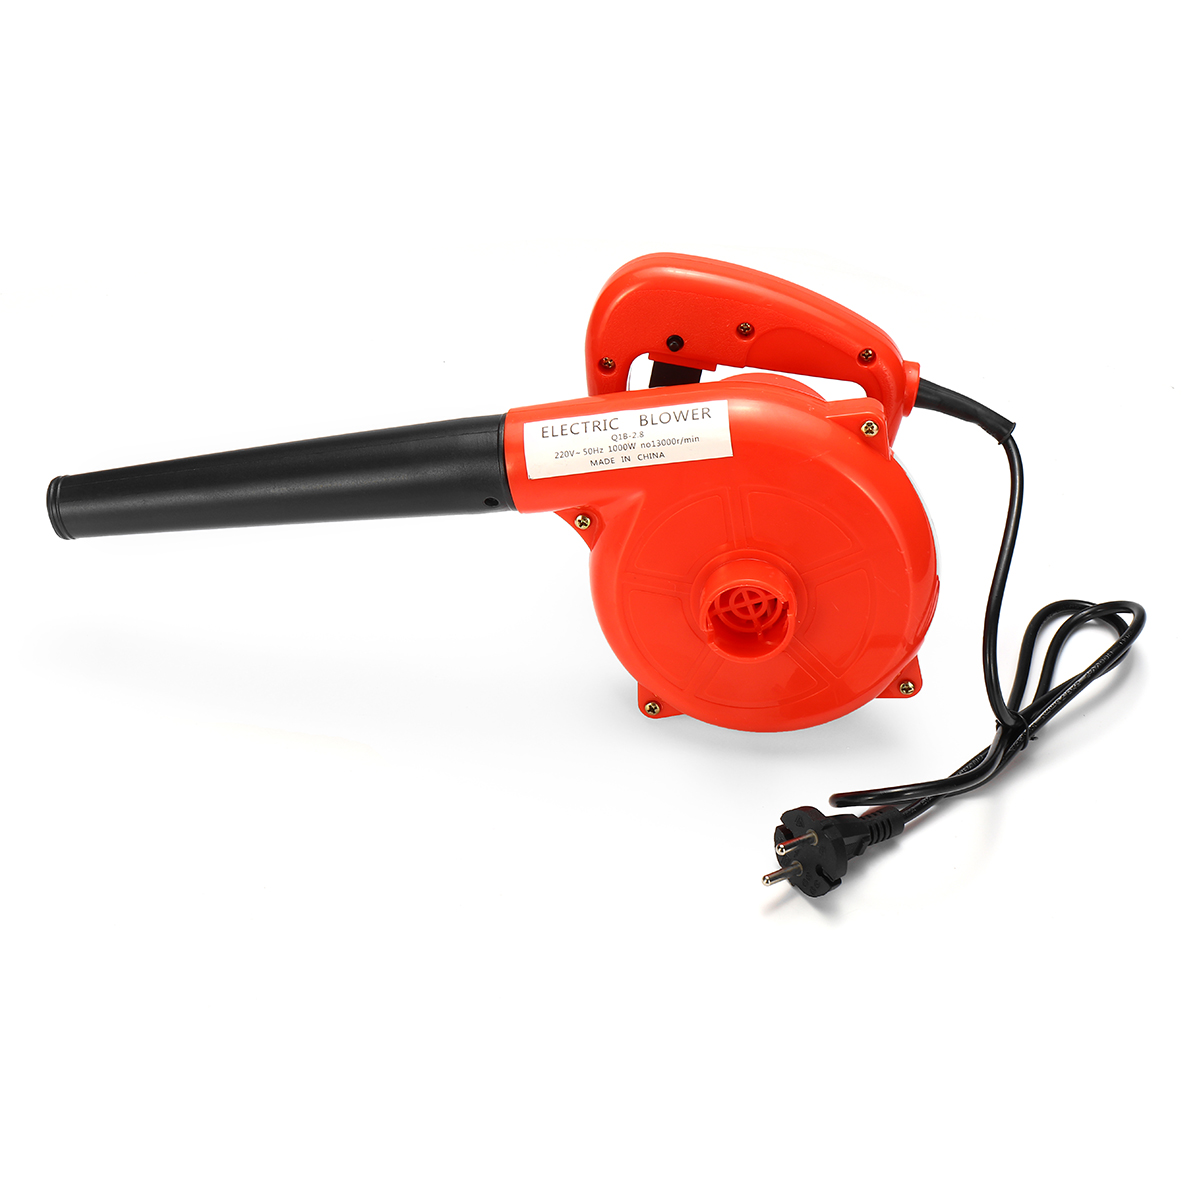 220V 1000W Suck Blow Dust Wiper Dust Settler Electric Hand Operated Air Blower Vacuum Cleaner